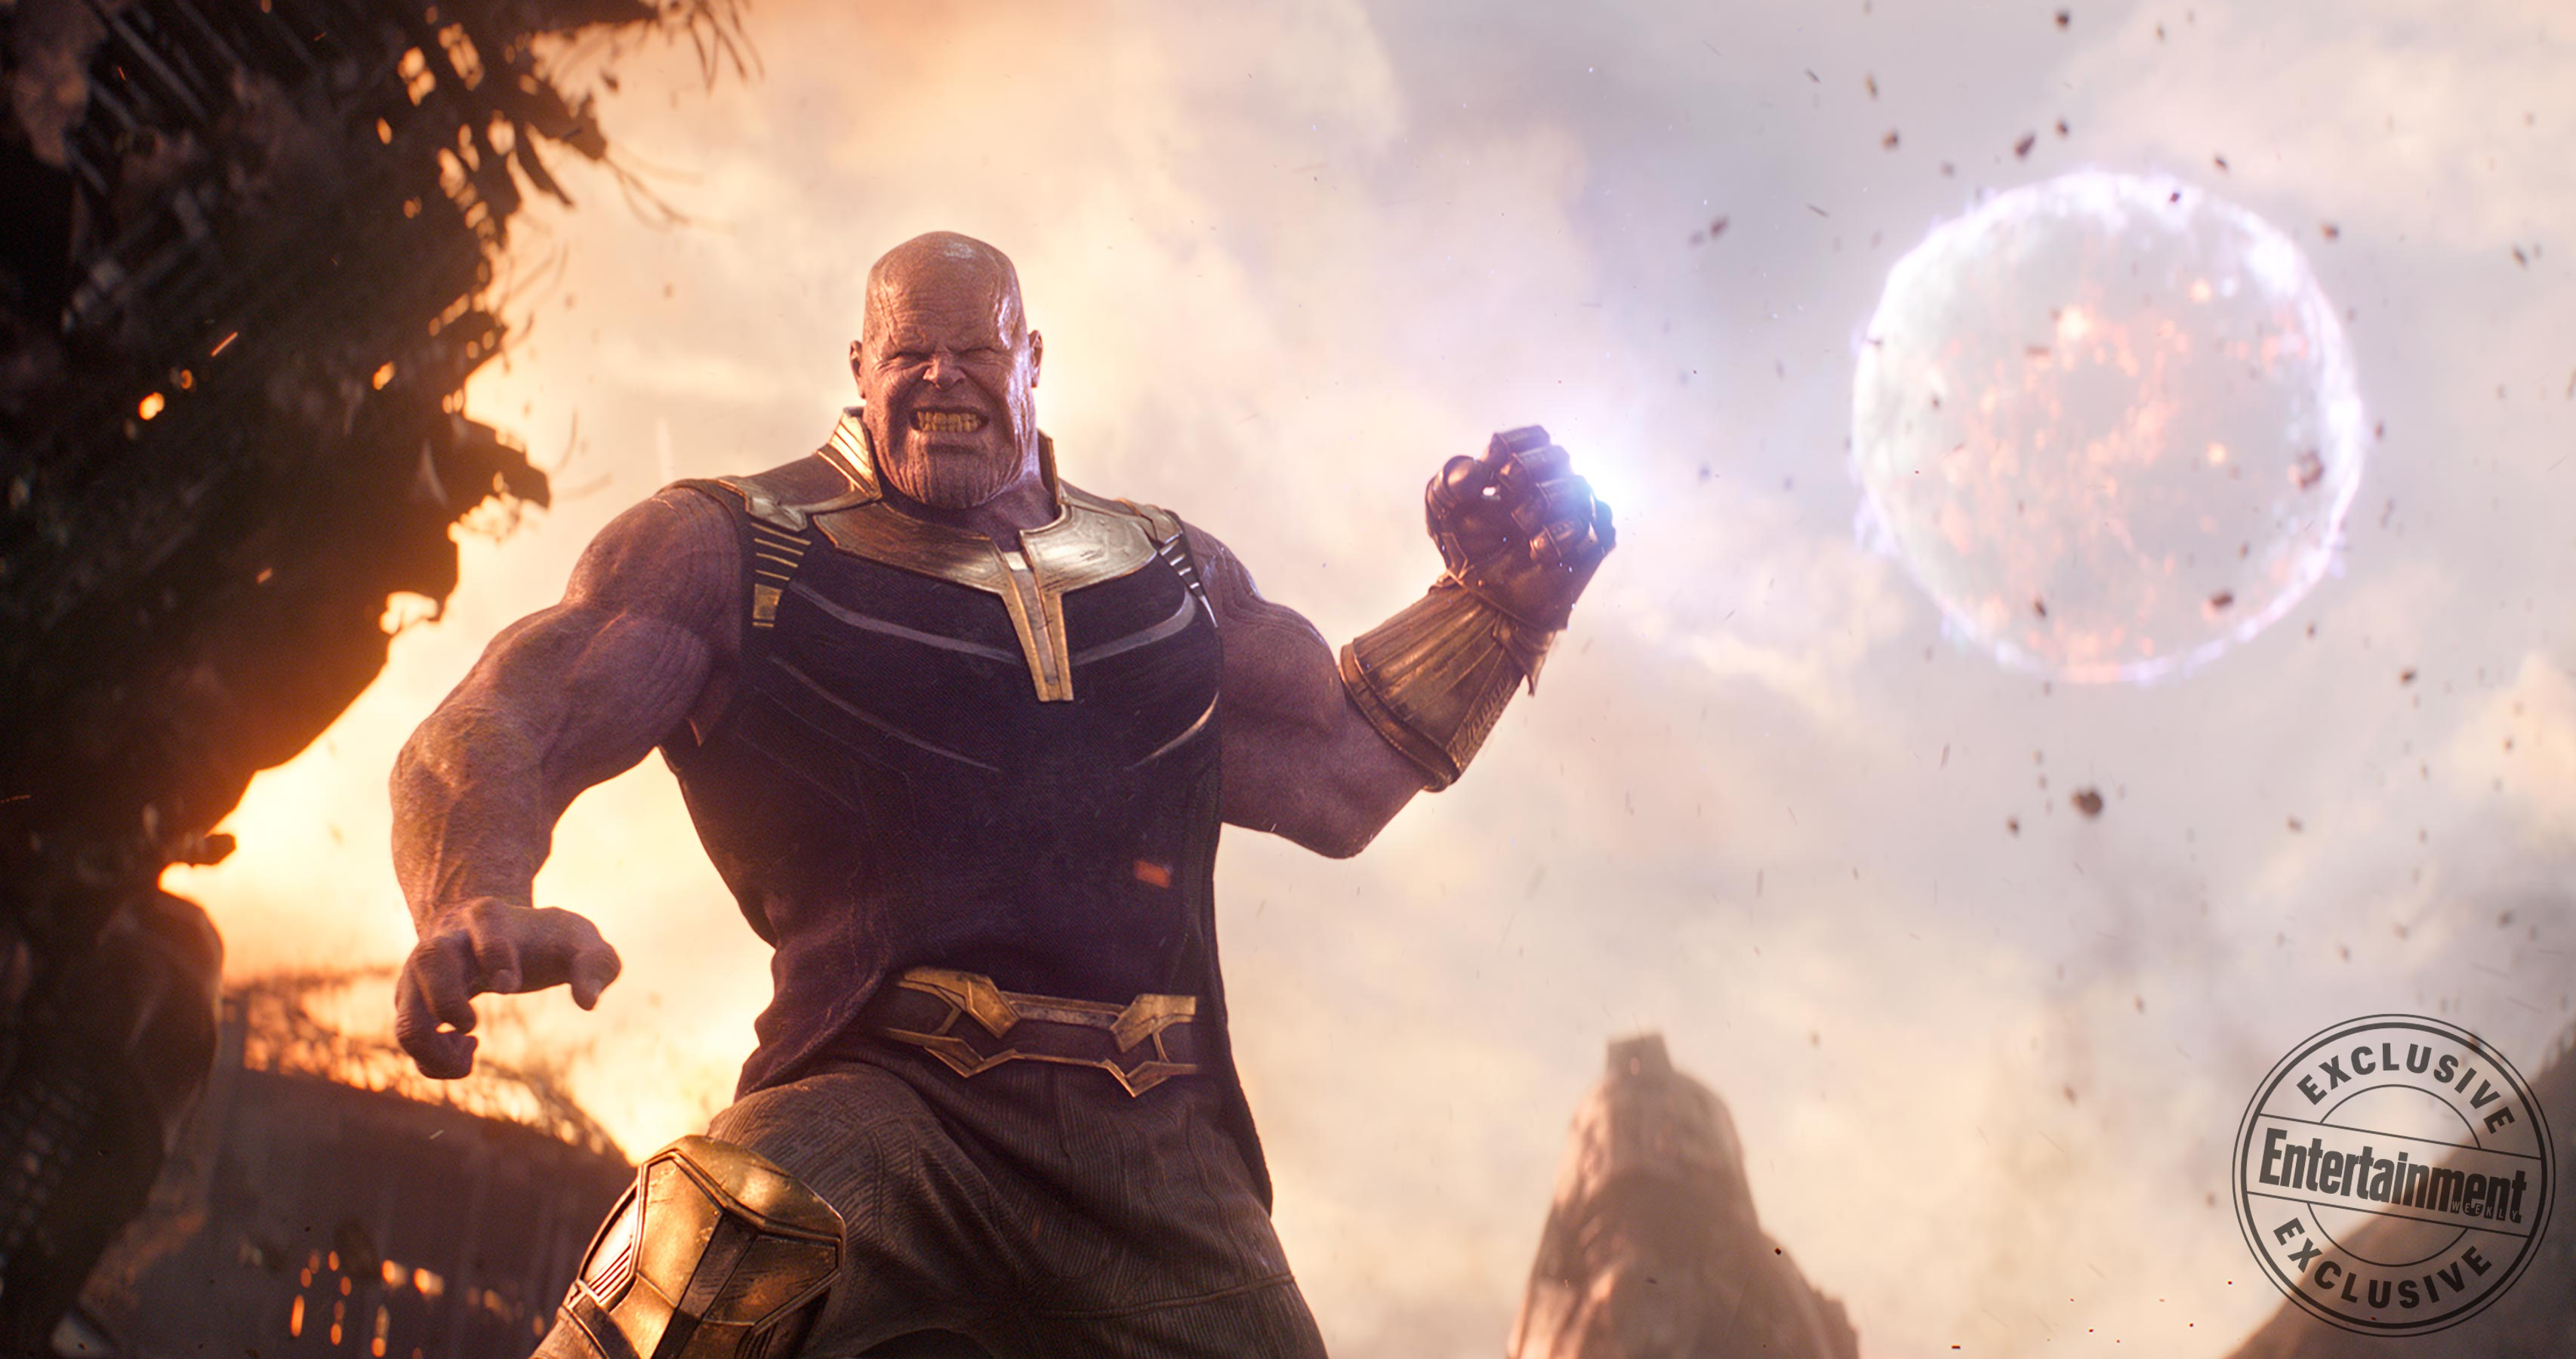 Avengers: Infinity War's Big Battle Will Take Place Somewhere We Didn't Expect